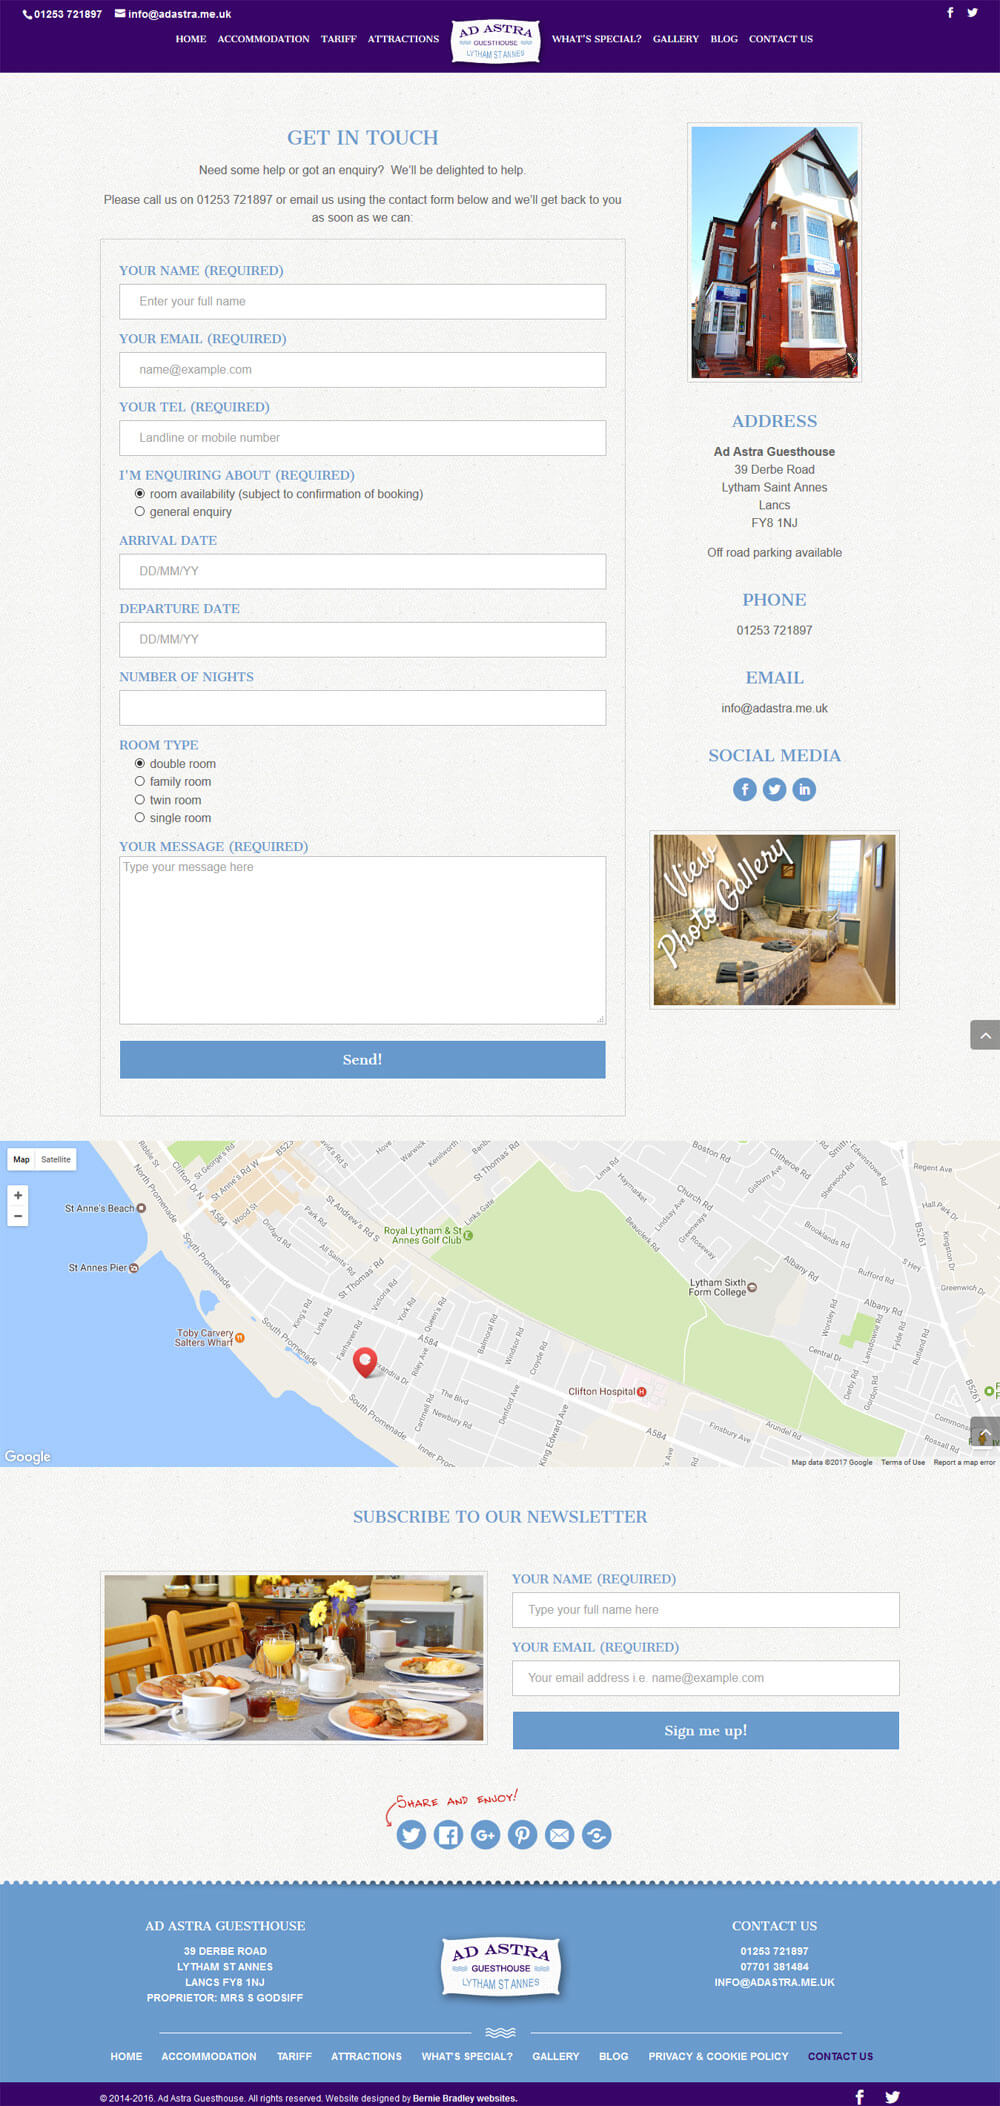 Contact Us page with custom enquiry form and Google Map